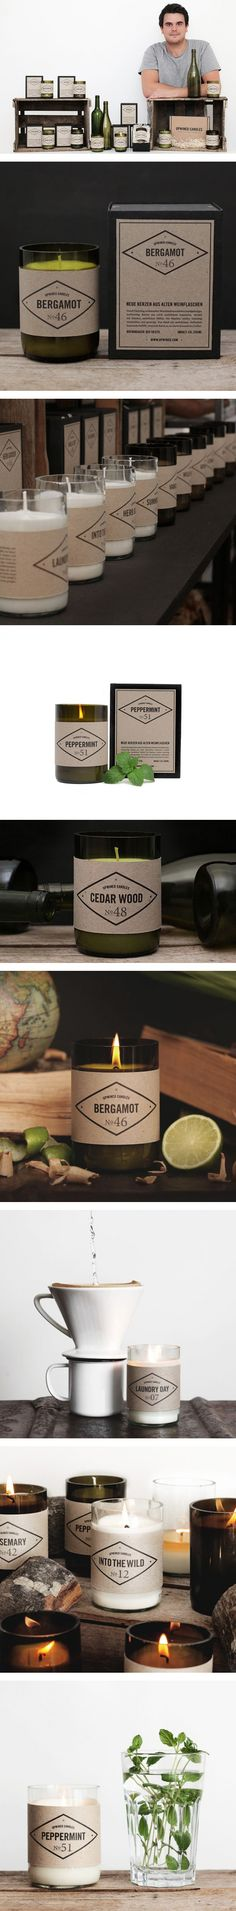 Get Inspired: Upwined Candles By Marco Hess via iamthelab.com